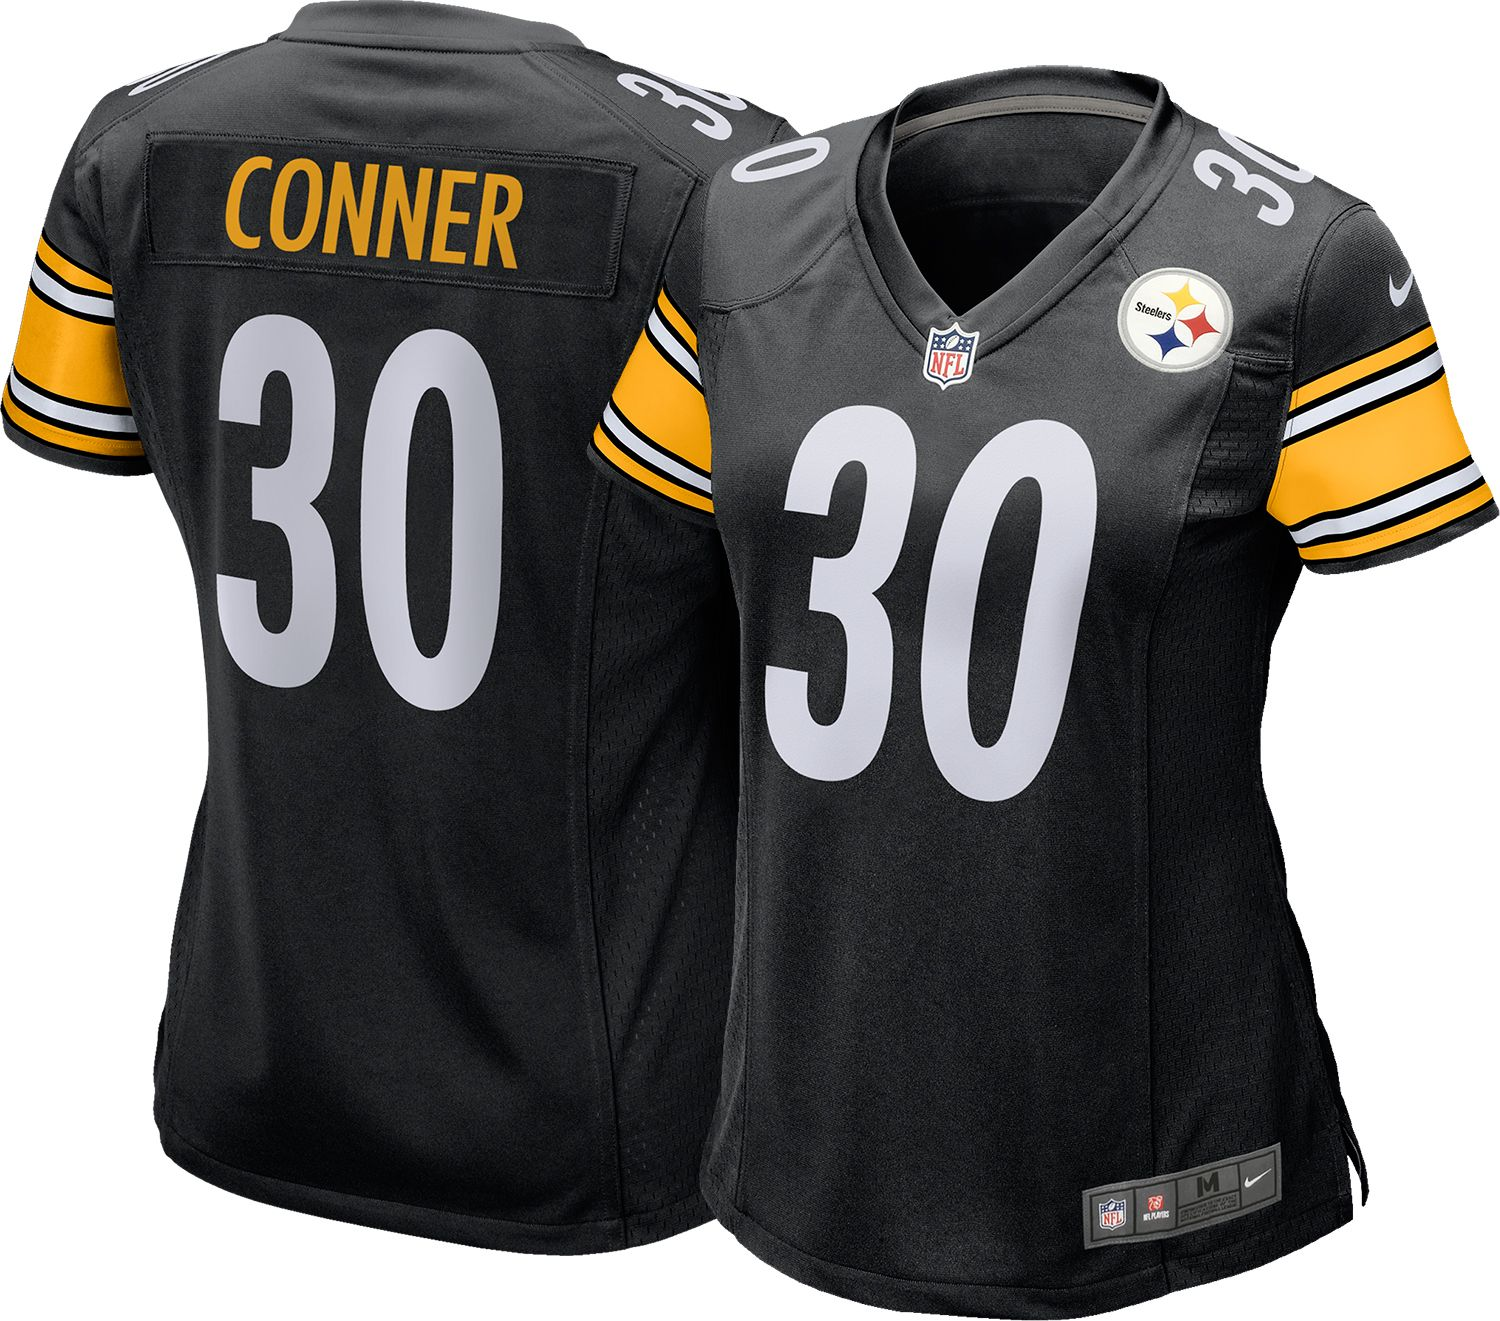 James Conner NFL Jersey